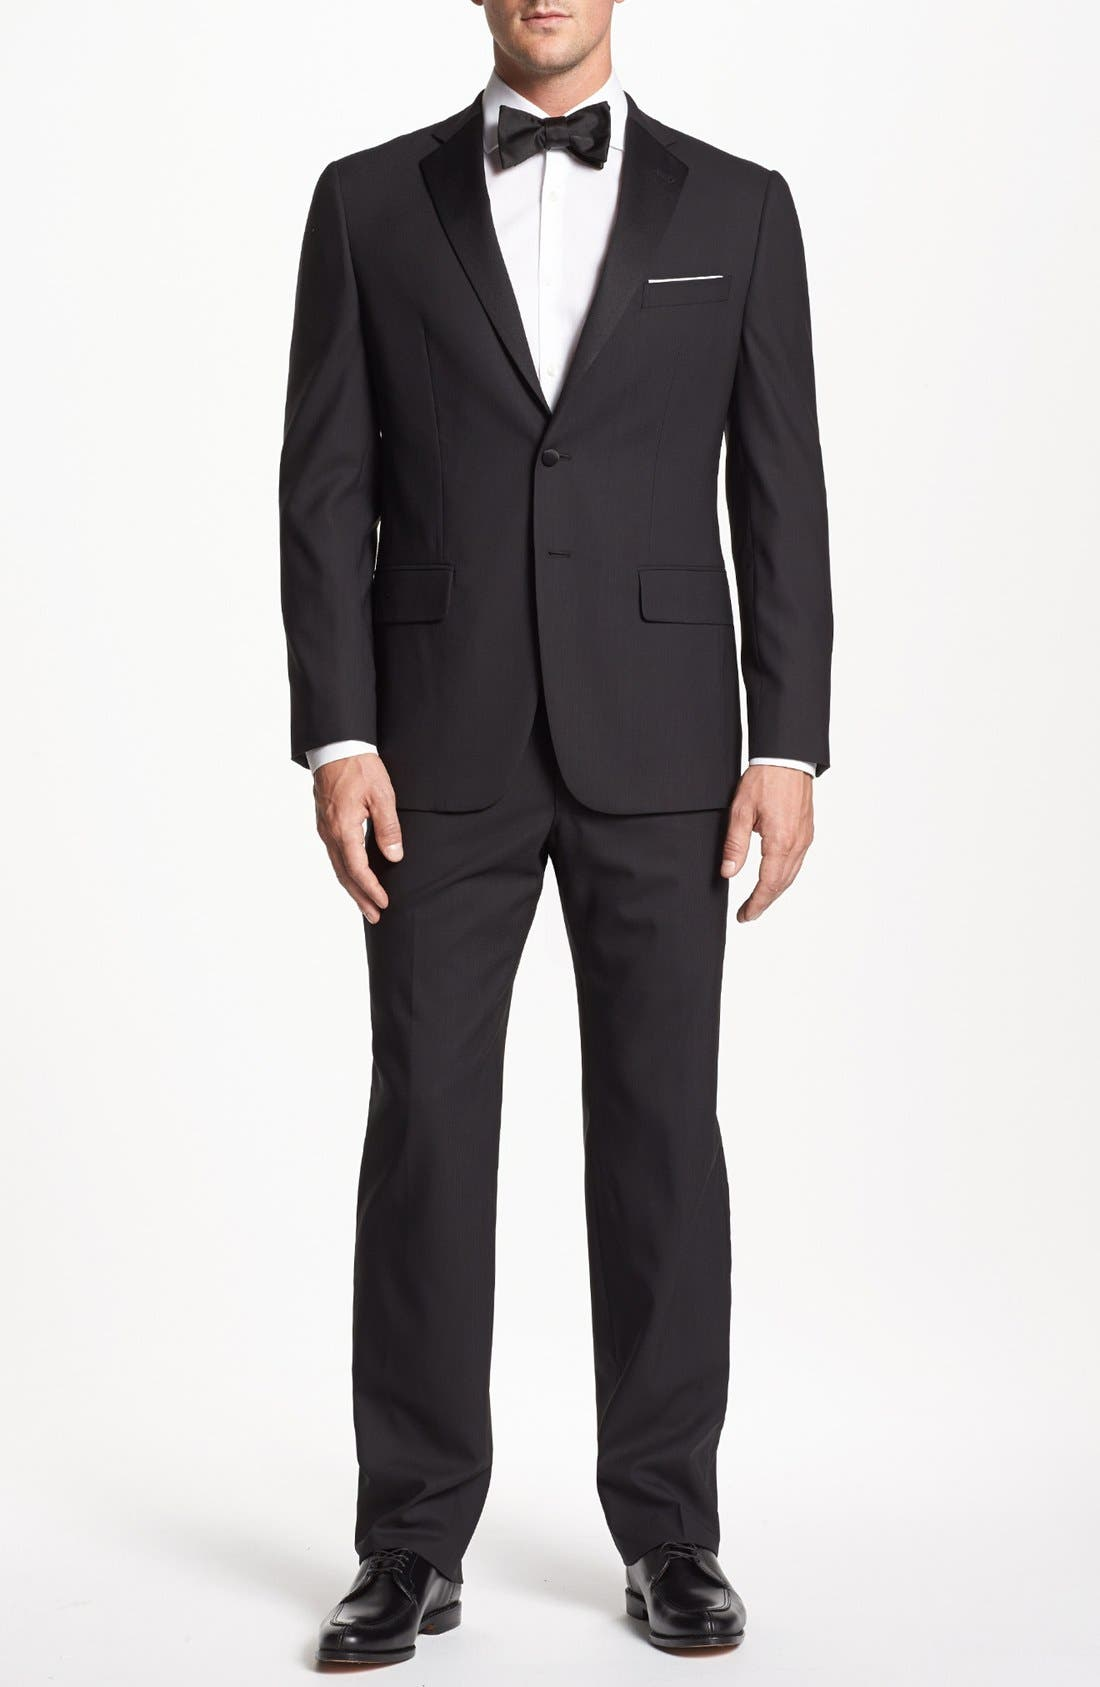 Alternate Image 1 Selected - Joseph Abboud 'Profile Hybrid' Trim Fit Wool Tuxedo (Online Only)